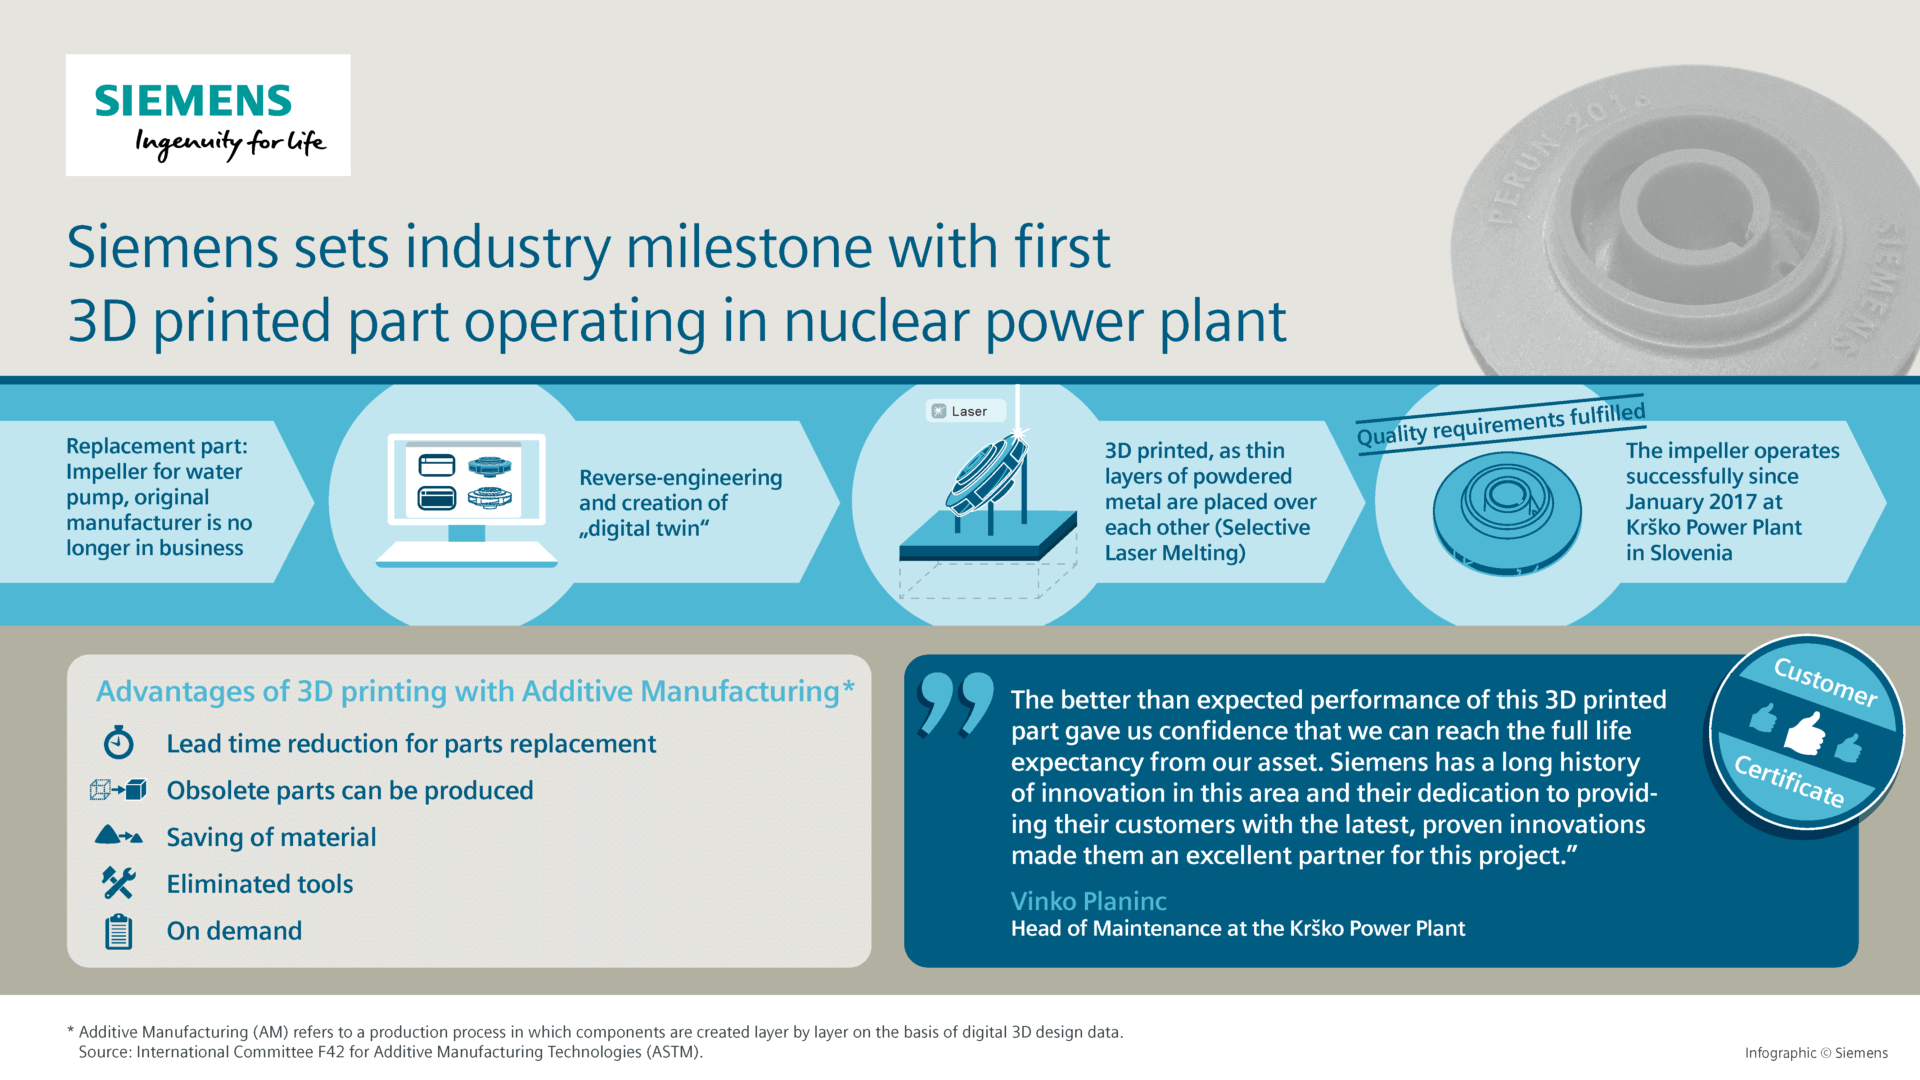 Siemens Making 3D Printed Gas Turbines & Parts for Nuclear